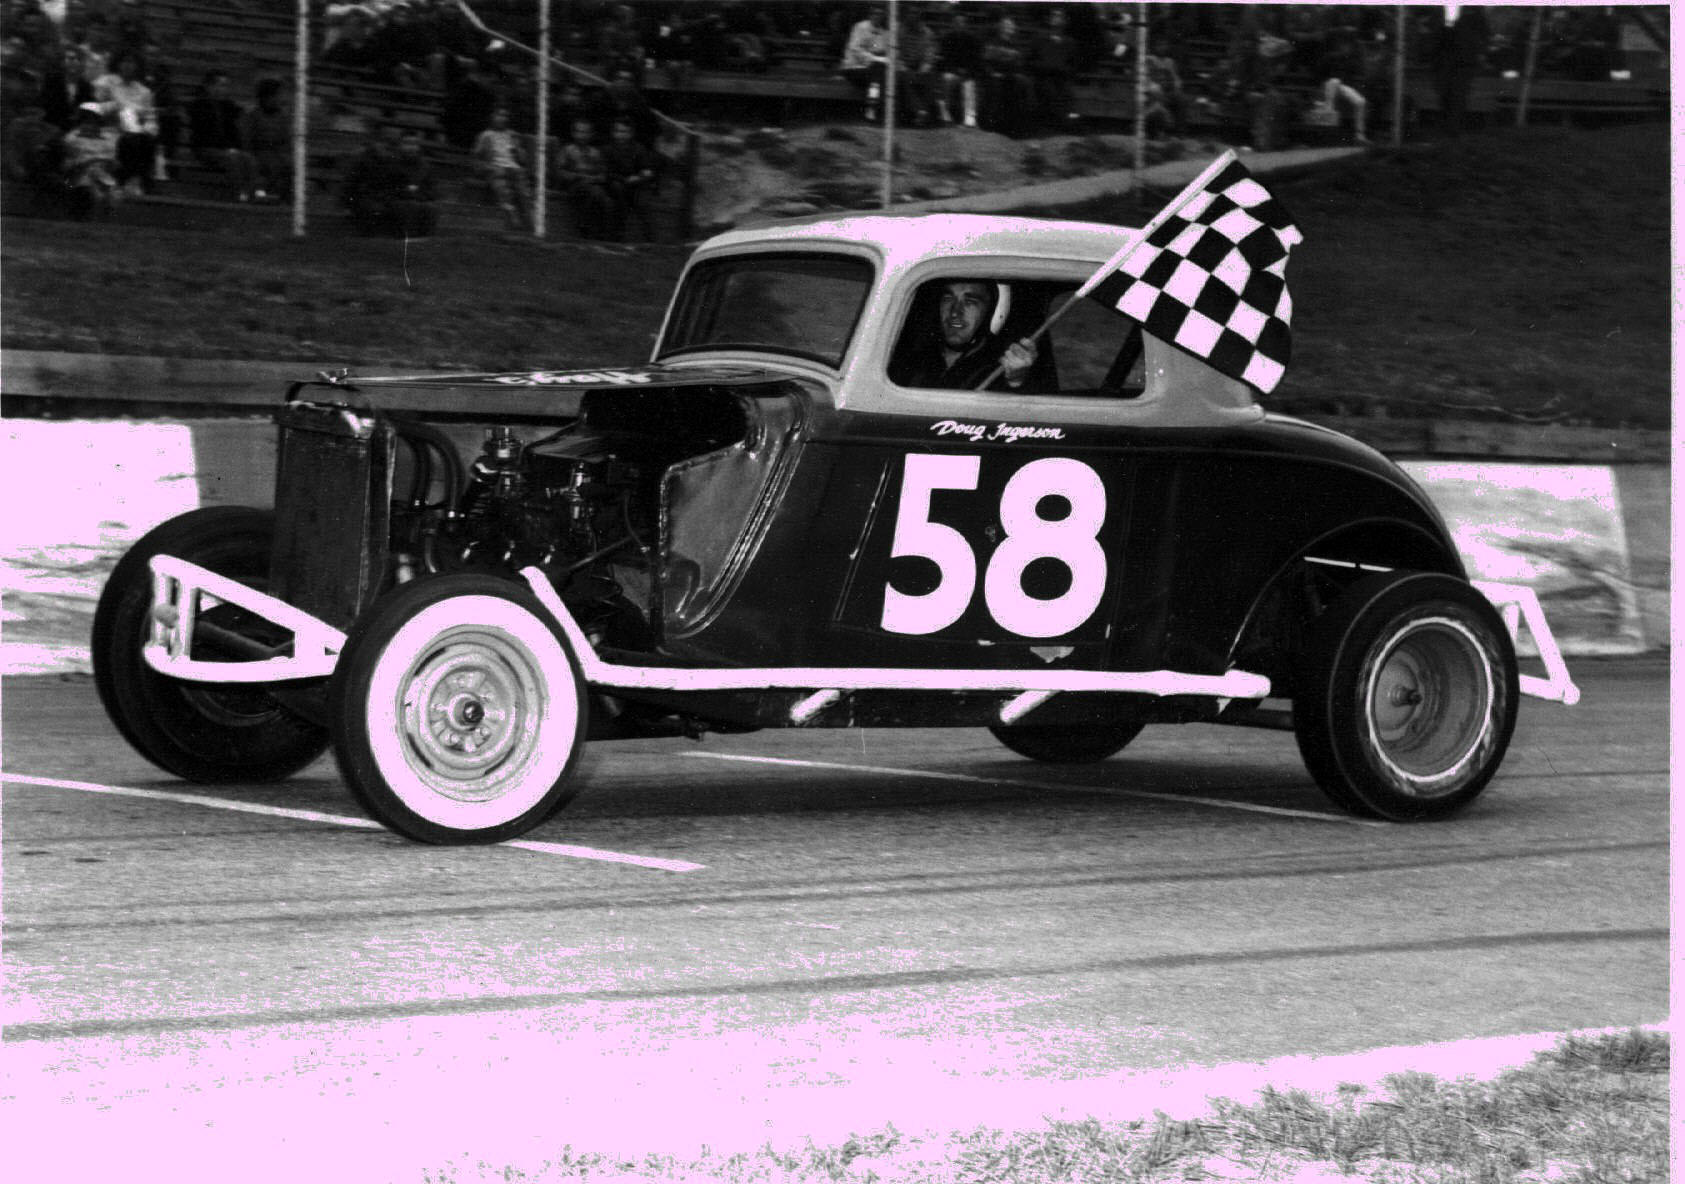 Doug George Racing Pictures To Pin On Pinterest